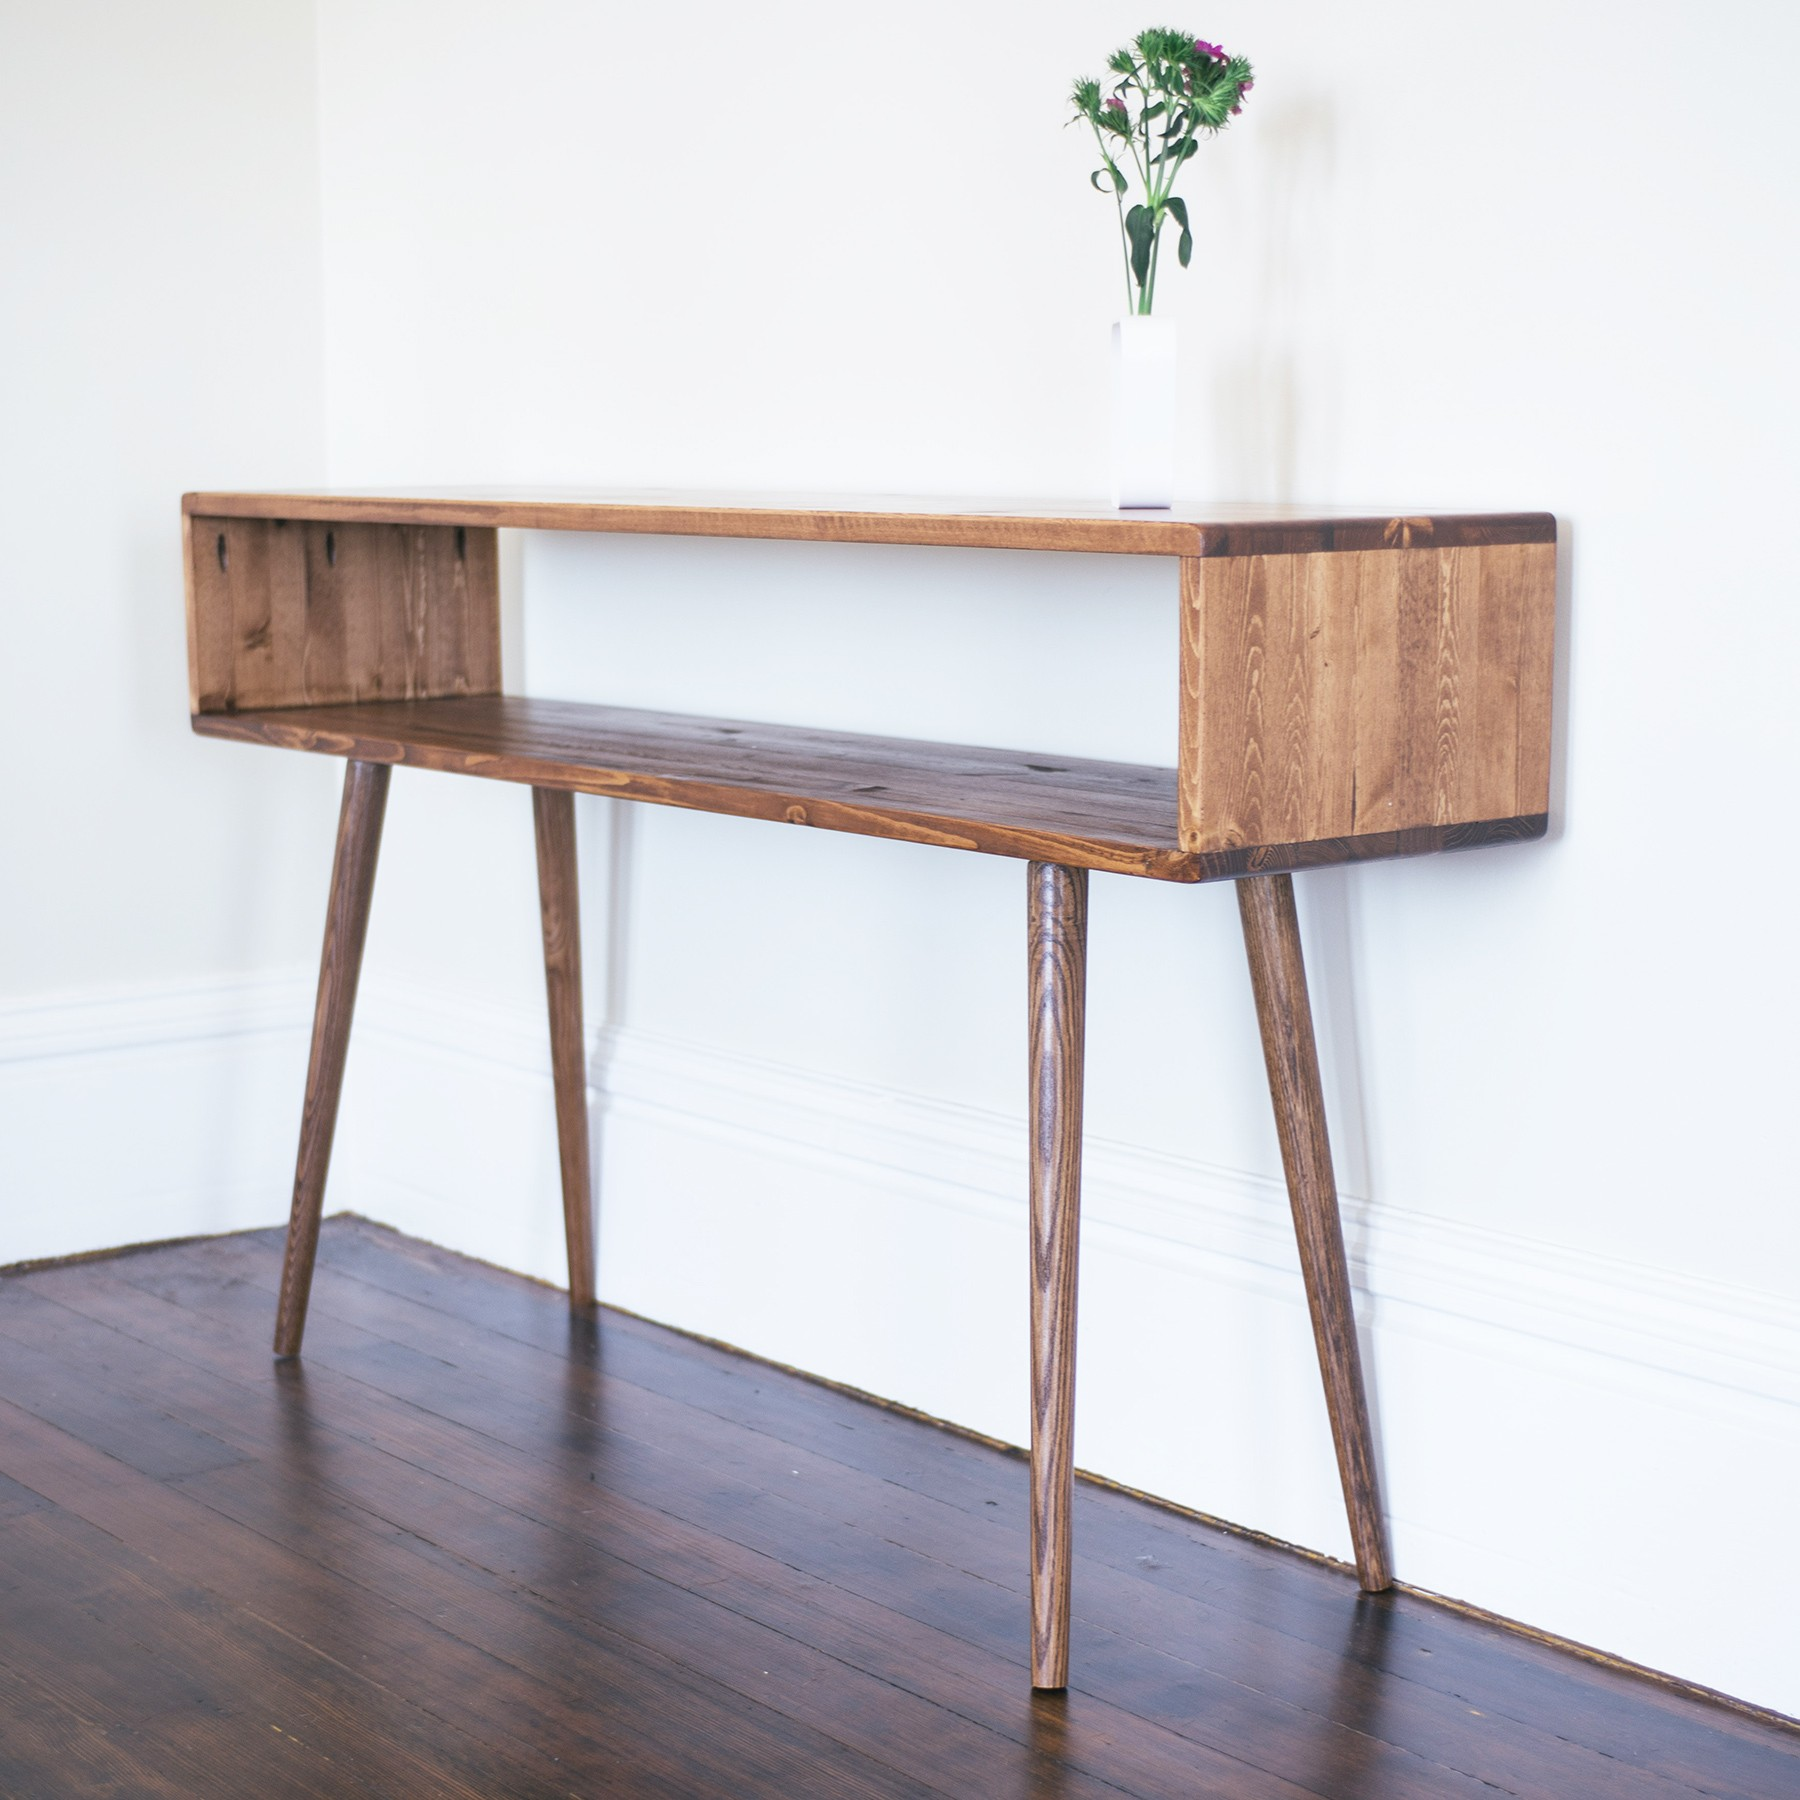 Mid Century Modern sofa Table Stunning Epic Mid Century Modern sofa Table In Modern sofa Inspiration Picture